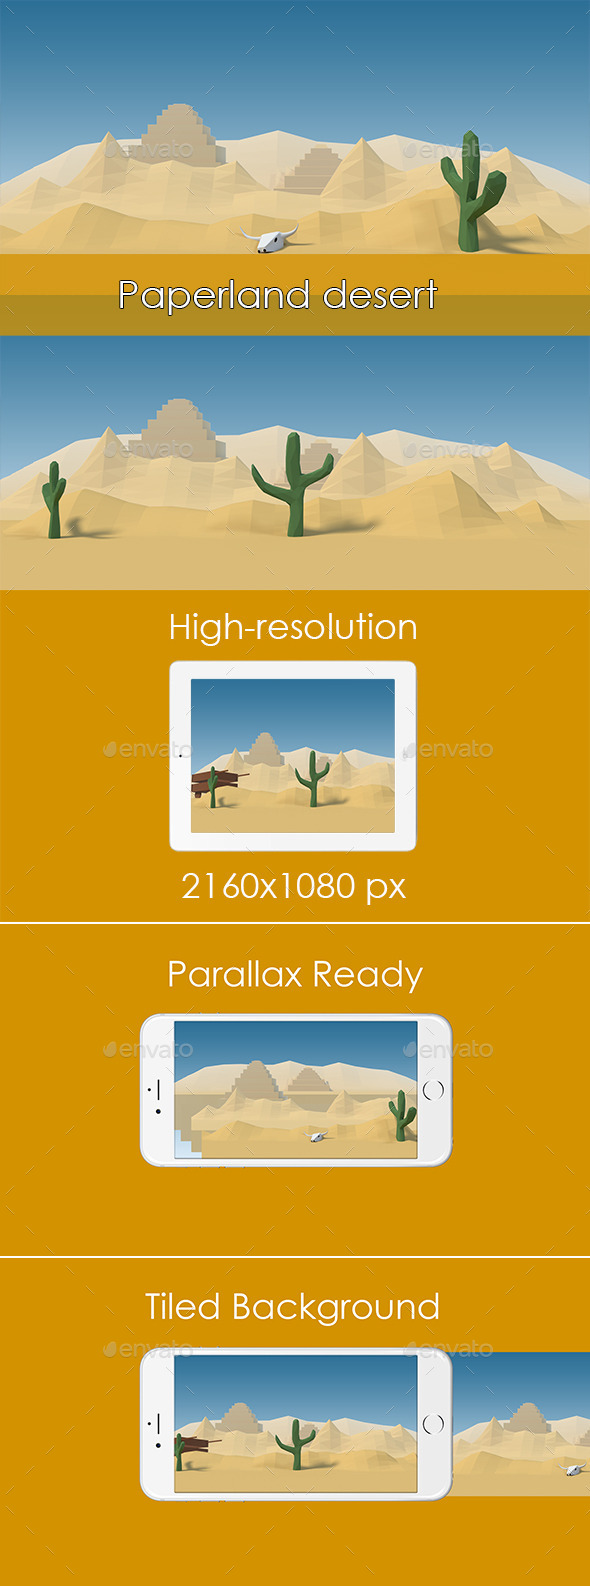 GraphicRiver Paperland Desert Game Background 11789577